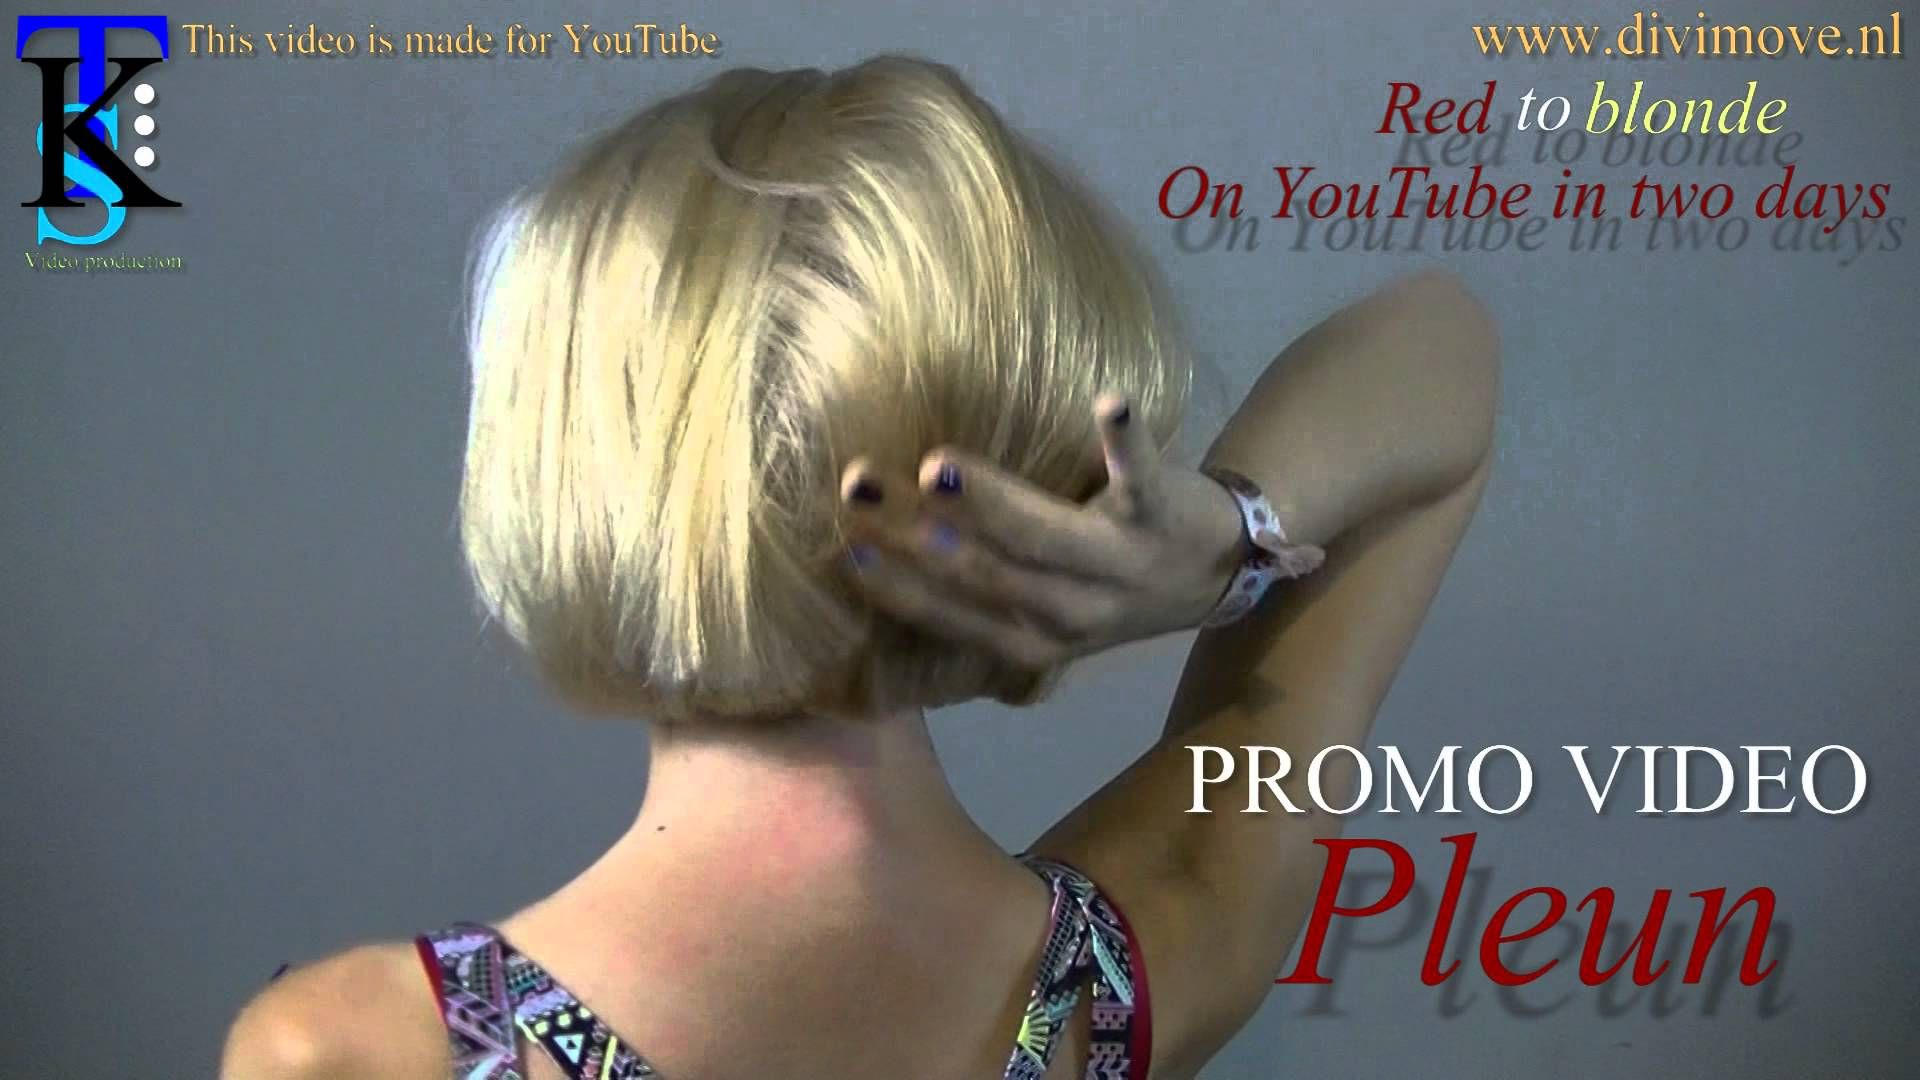 Promo Video Of Pleun It Will Be On Youtube In Two Days Tks